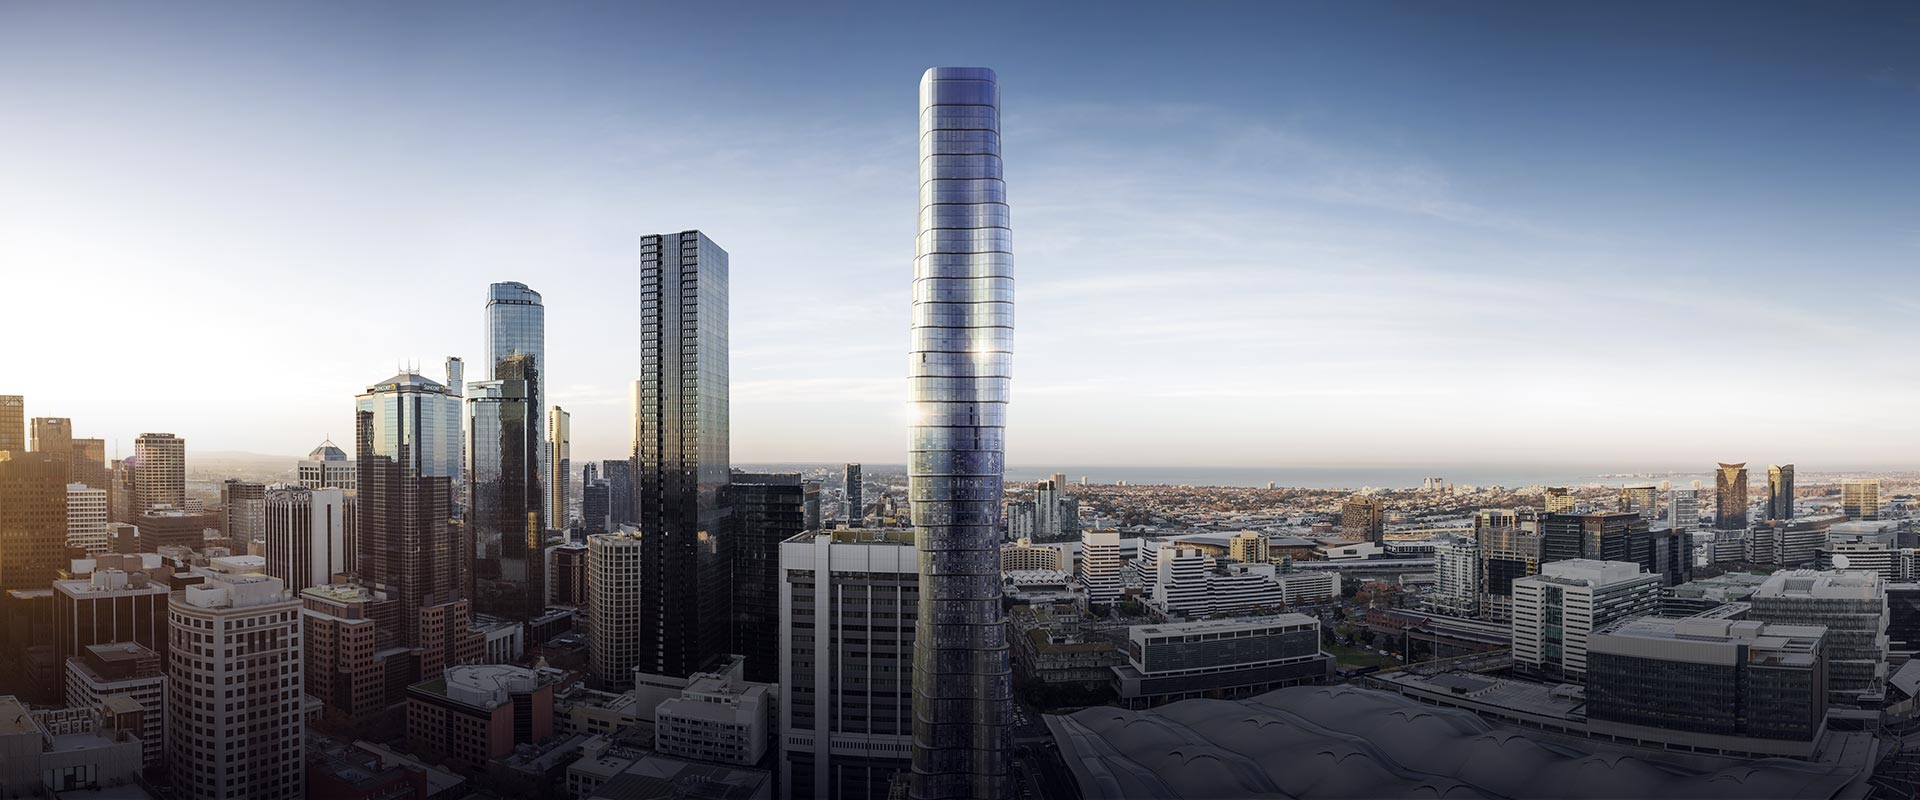 (English) Premier Tower, Melbourne